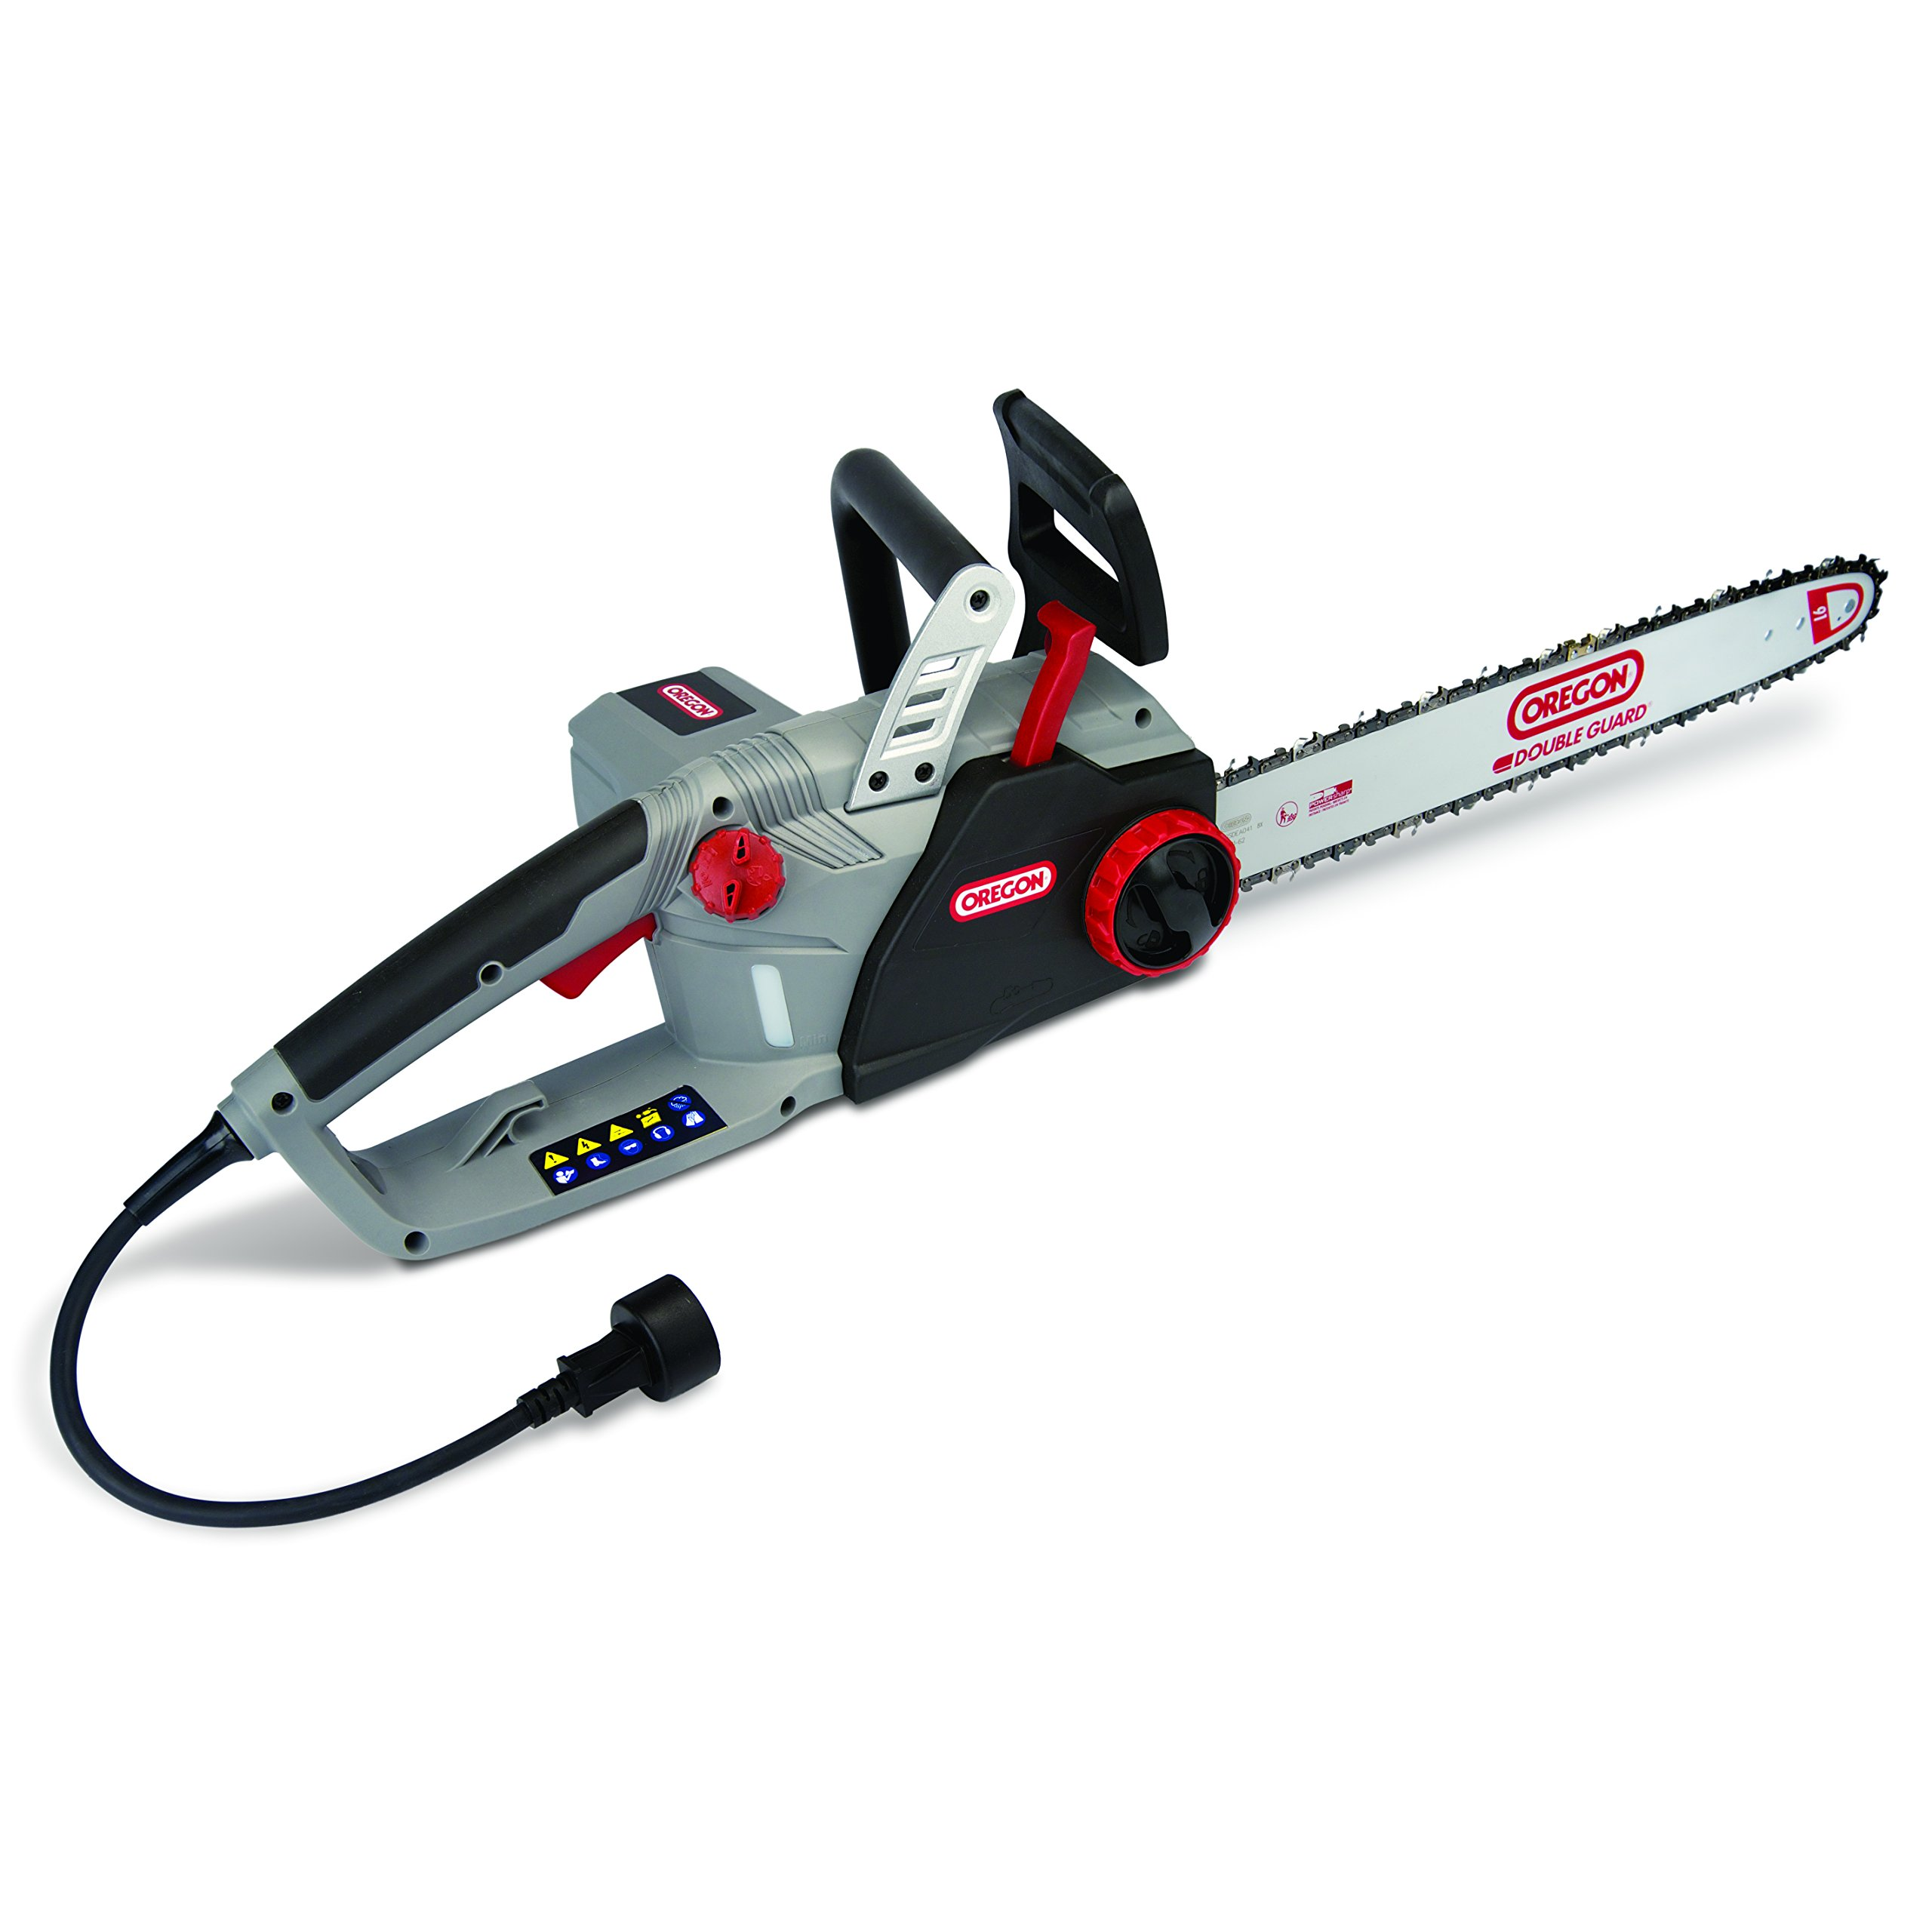 Oregon 570995 CS1500 Self-Sharpening Electric Chainsaw